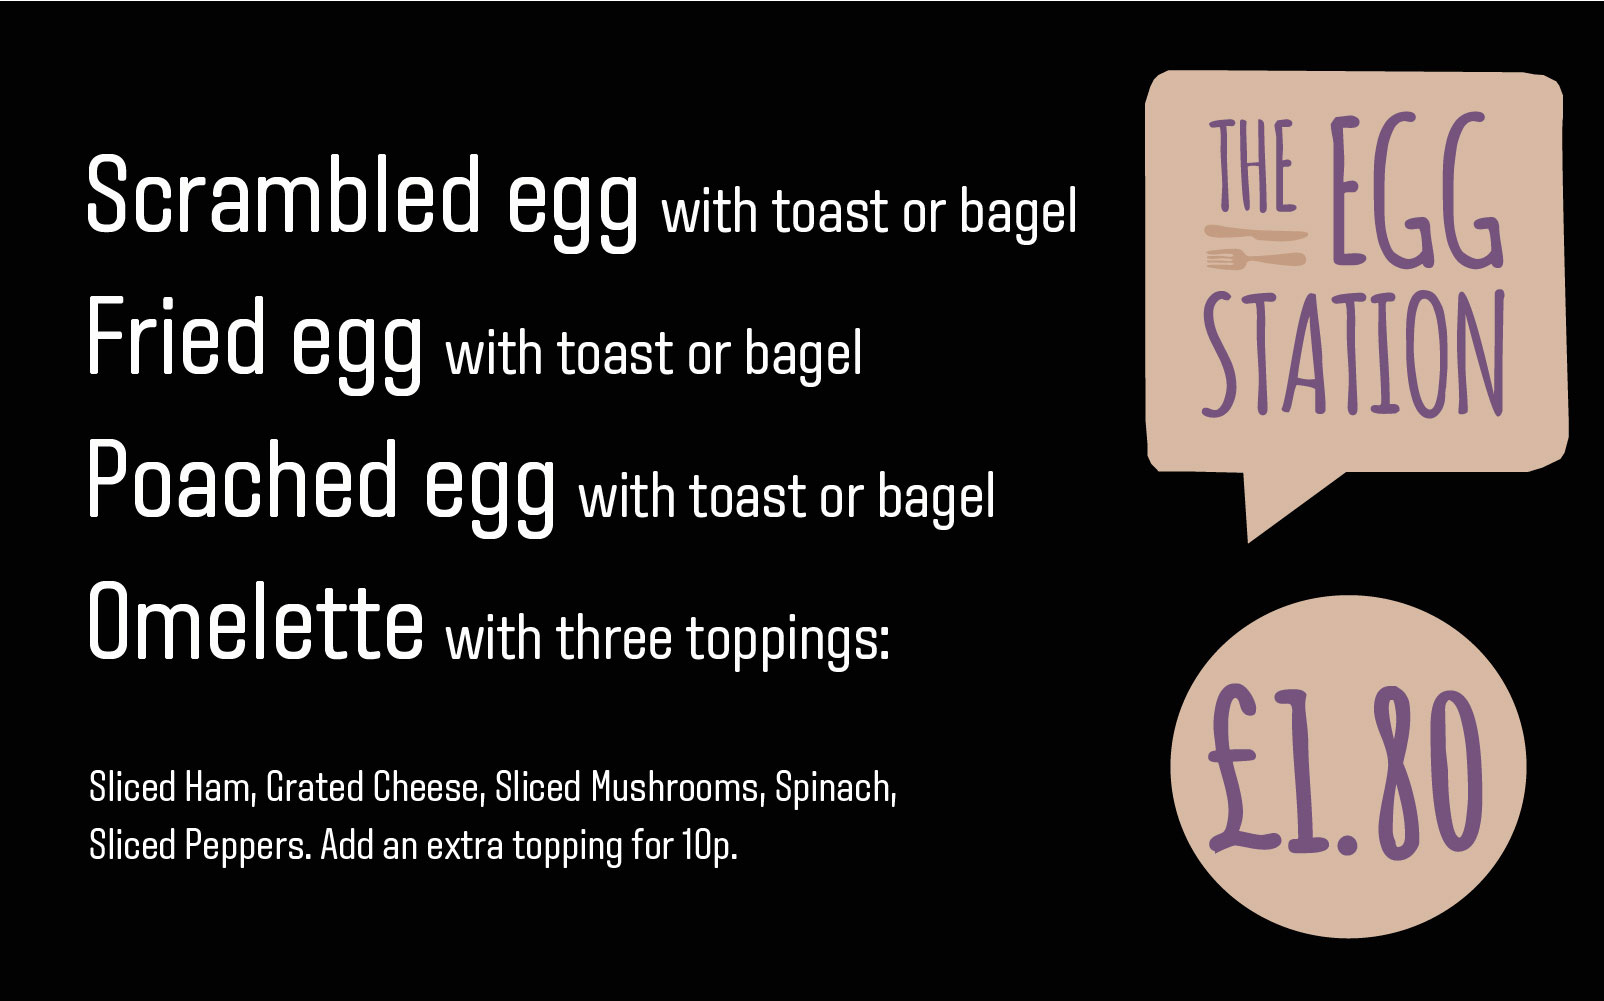 The Egg station menu